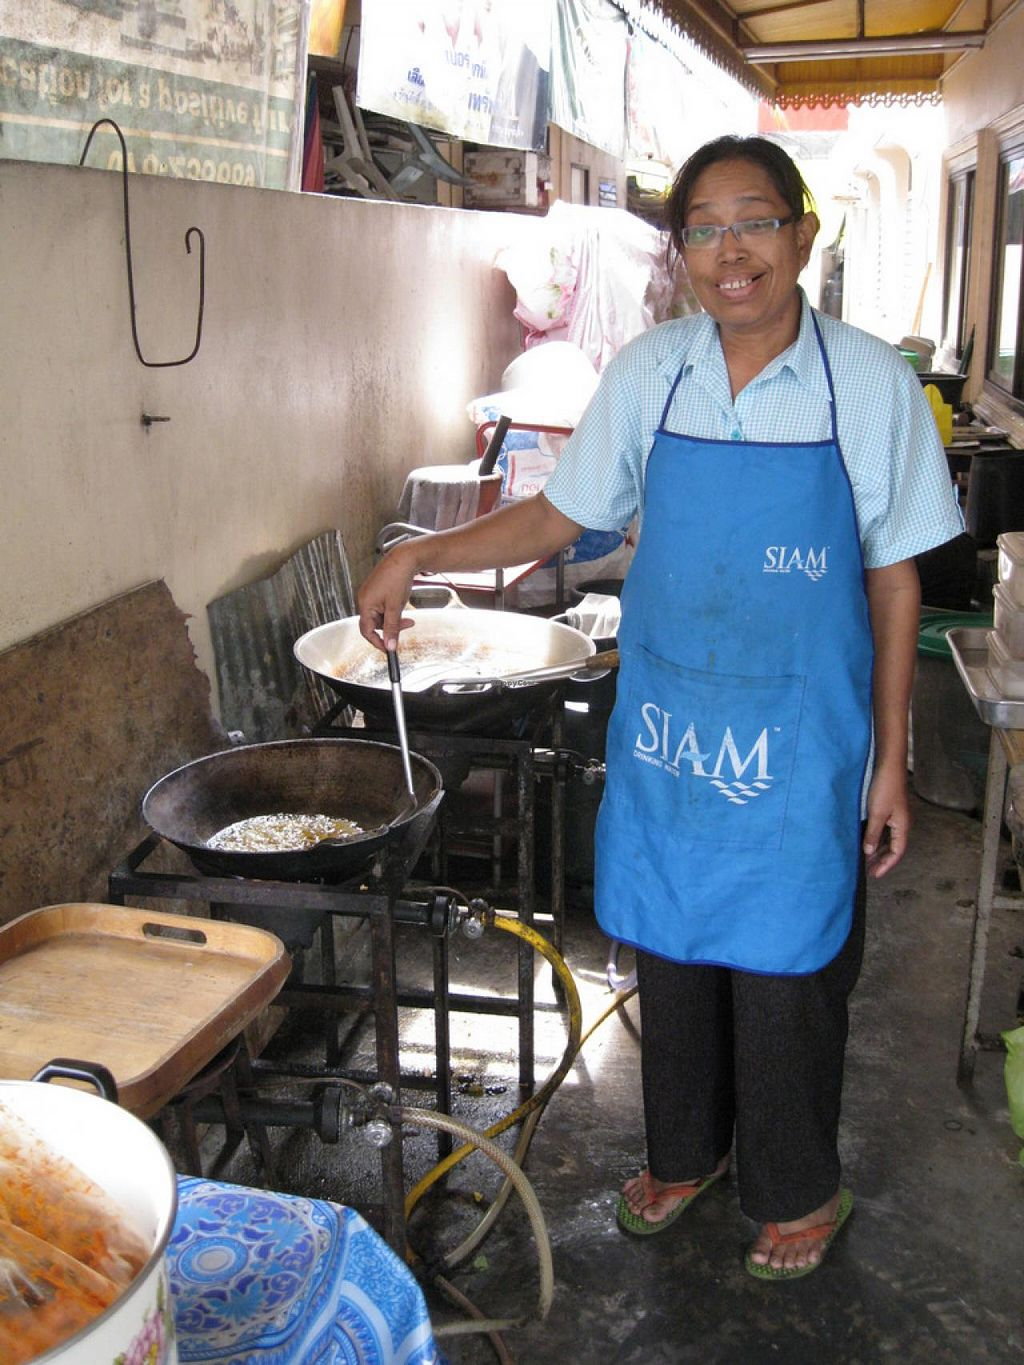 """Photo of Vegetarian Food - Patong  by <a href=""""/members/profile/KasperHansen"""">KasperHansen</a> <br/>One of the sweet ladies that worked there. She is making a mock duck dish for me, to take to the airport next day - since there is never any food there I want <br/> January 7, 2014  - <a href='/contact/abuse/image/27964/62026'>Report</a>"""